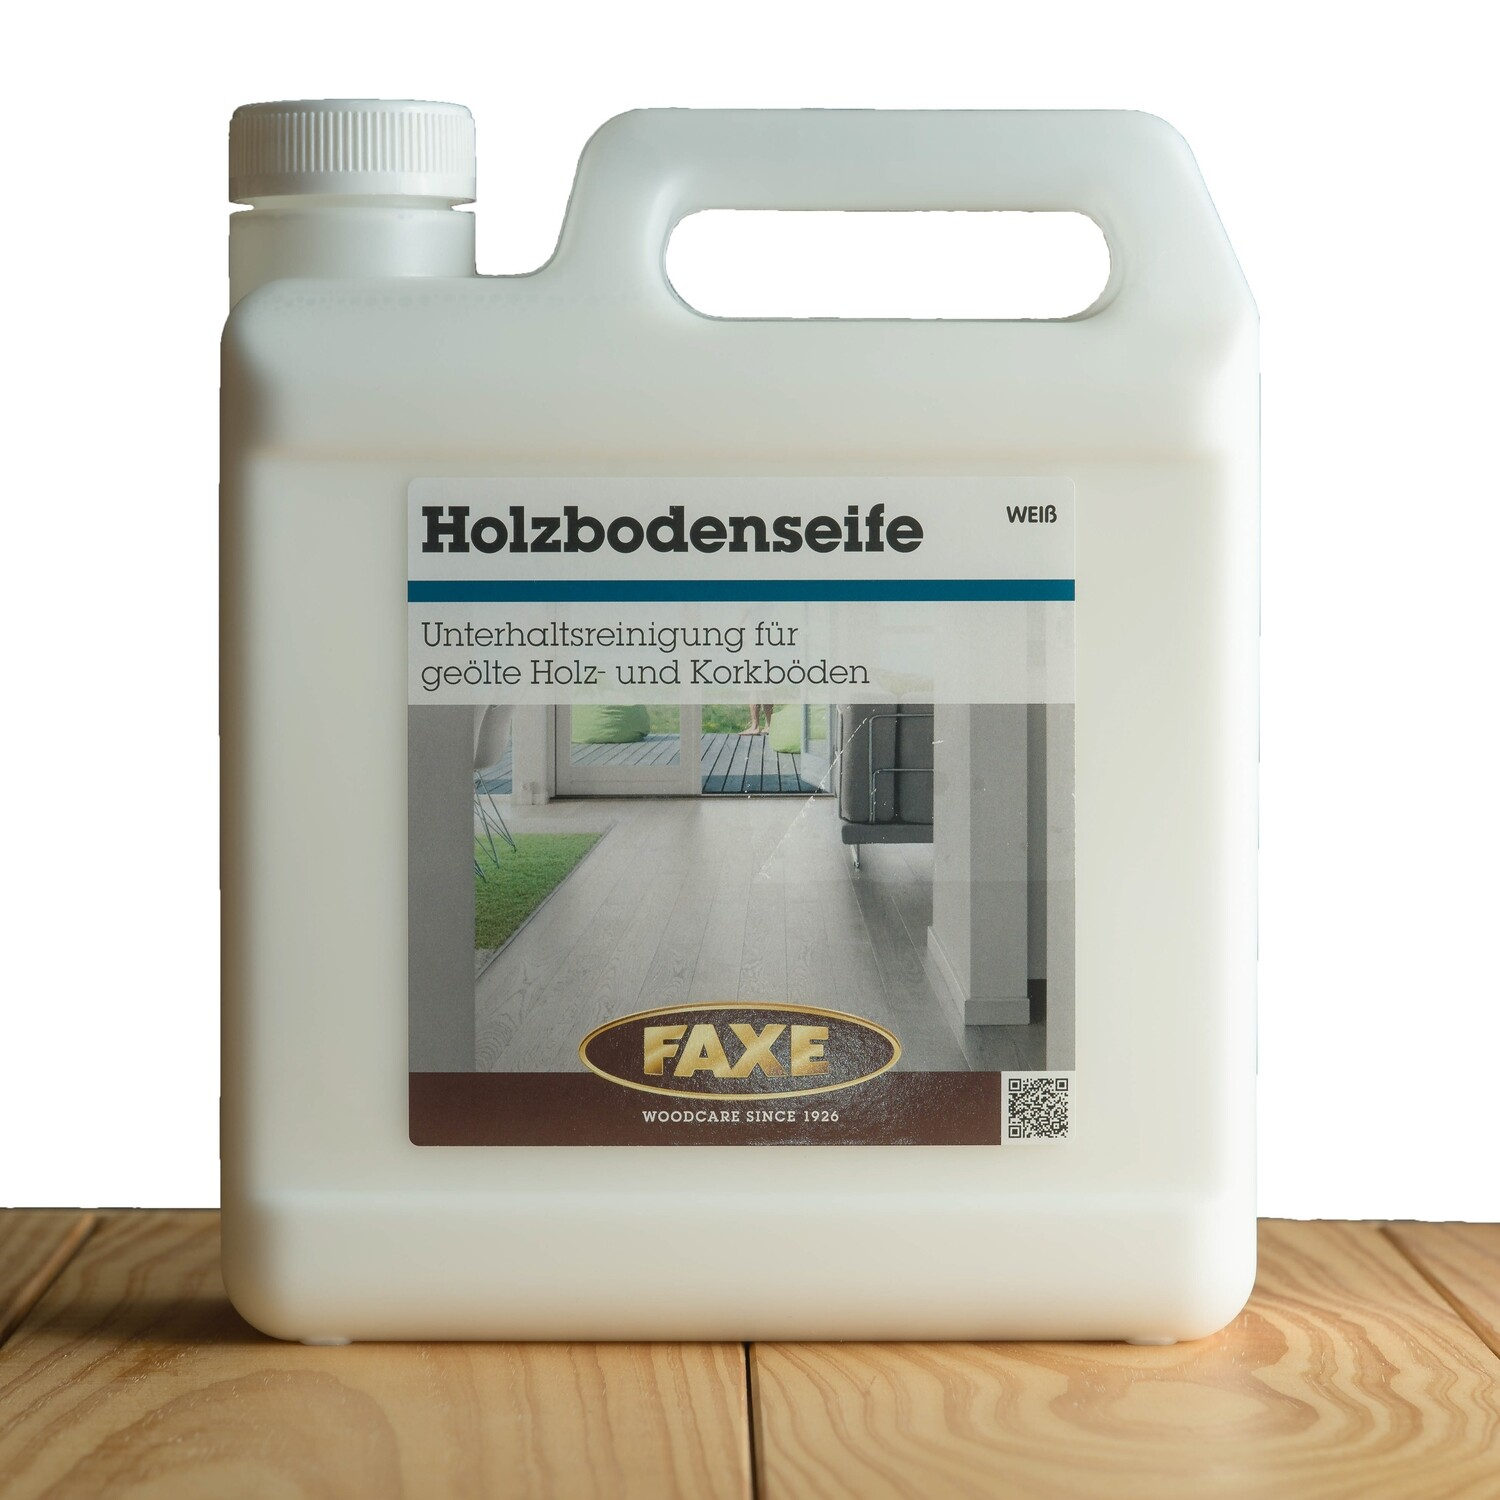 Faxe Holzbodenseife weiß 2,5 l